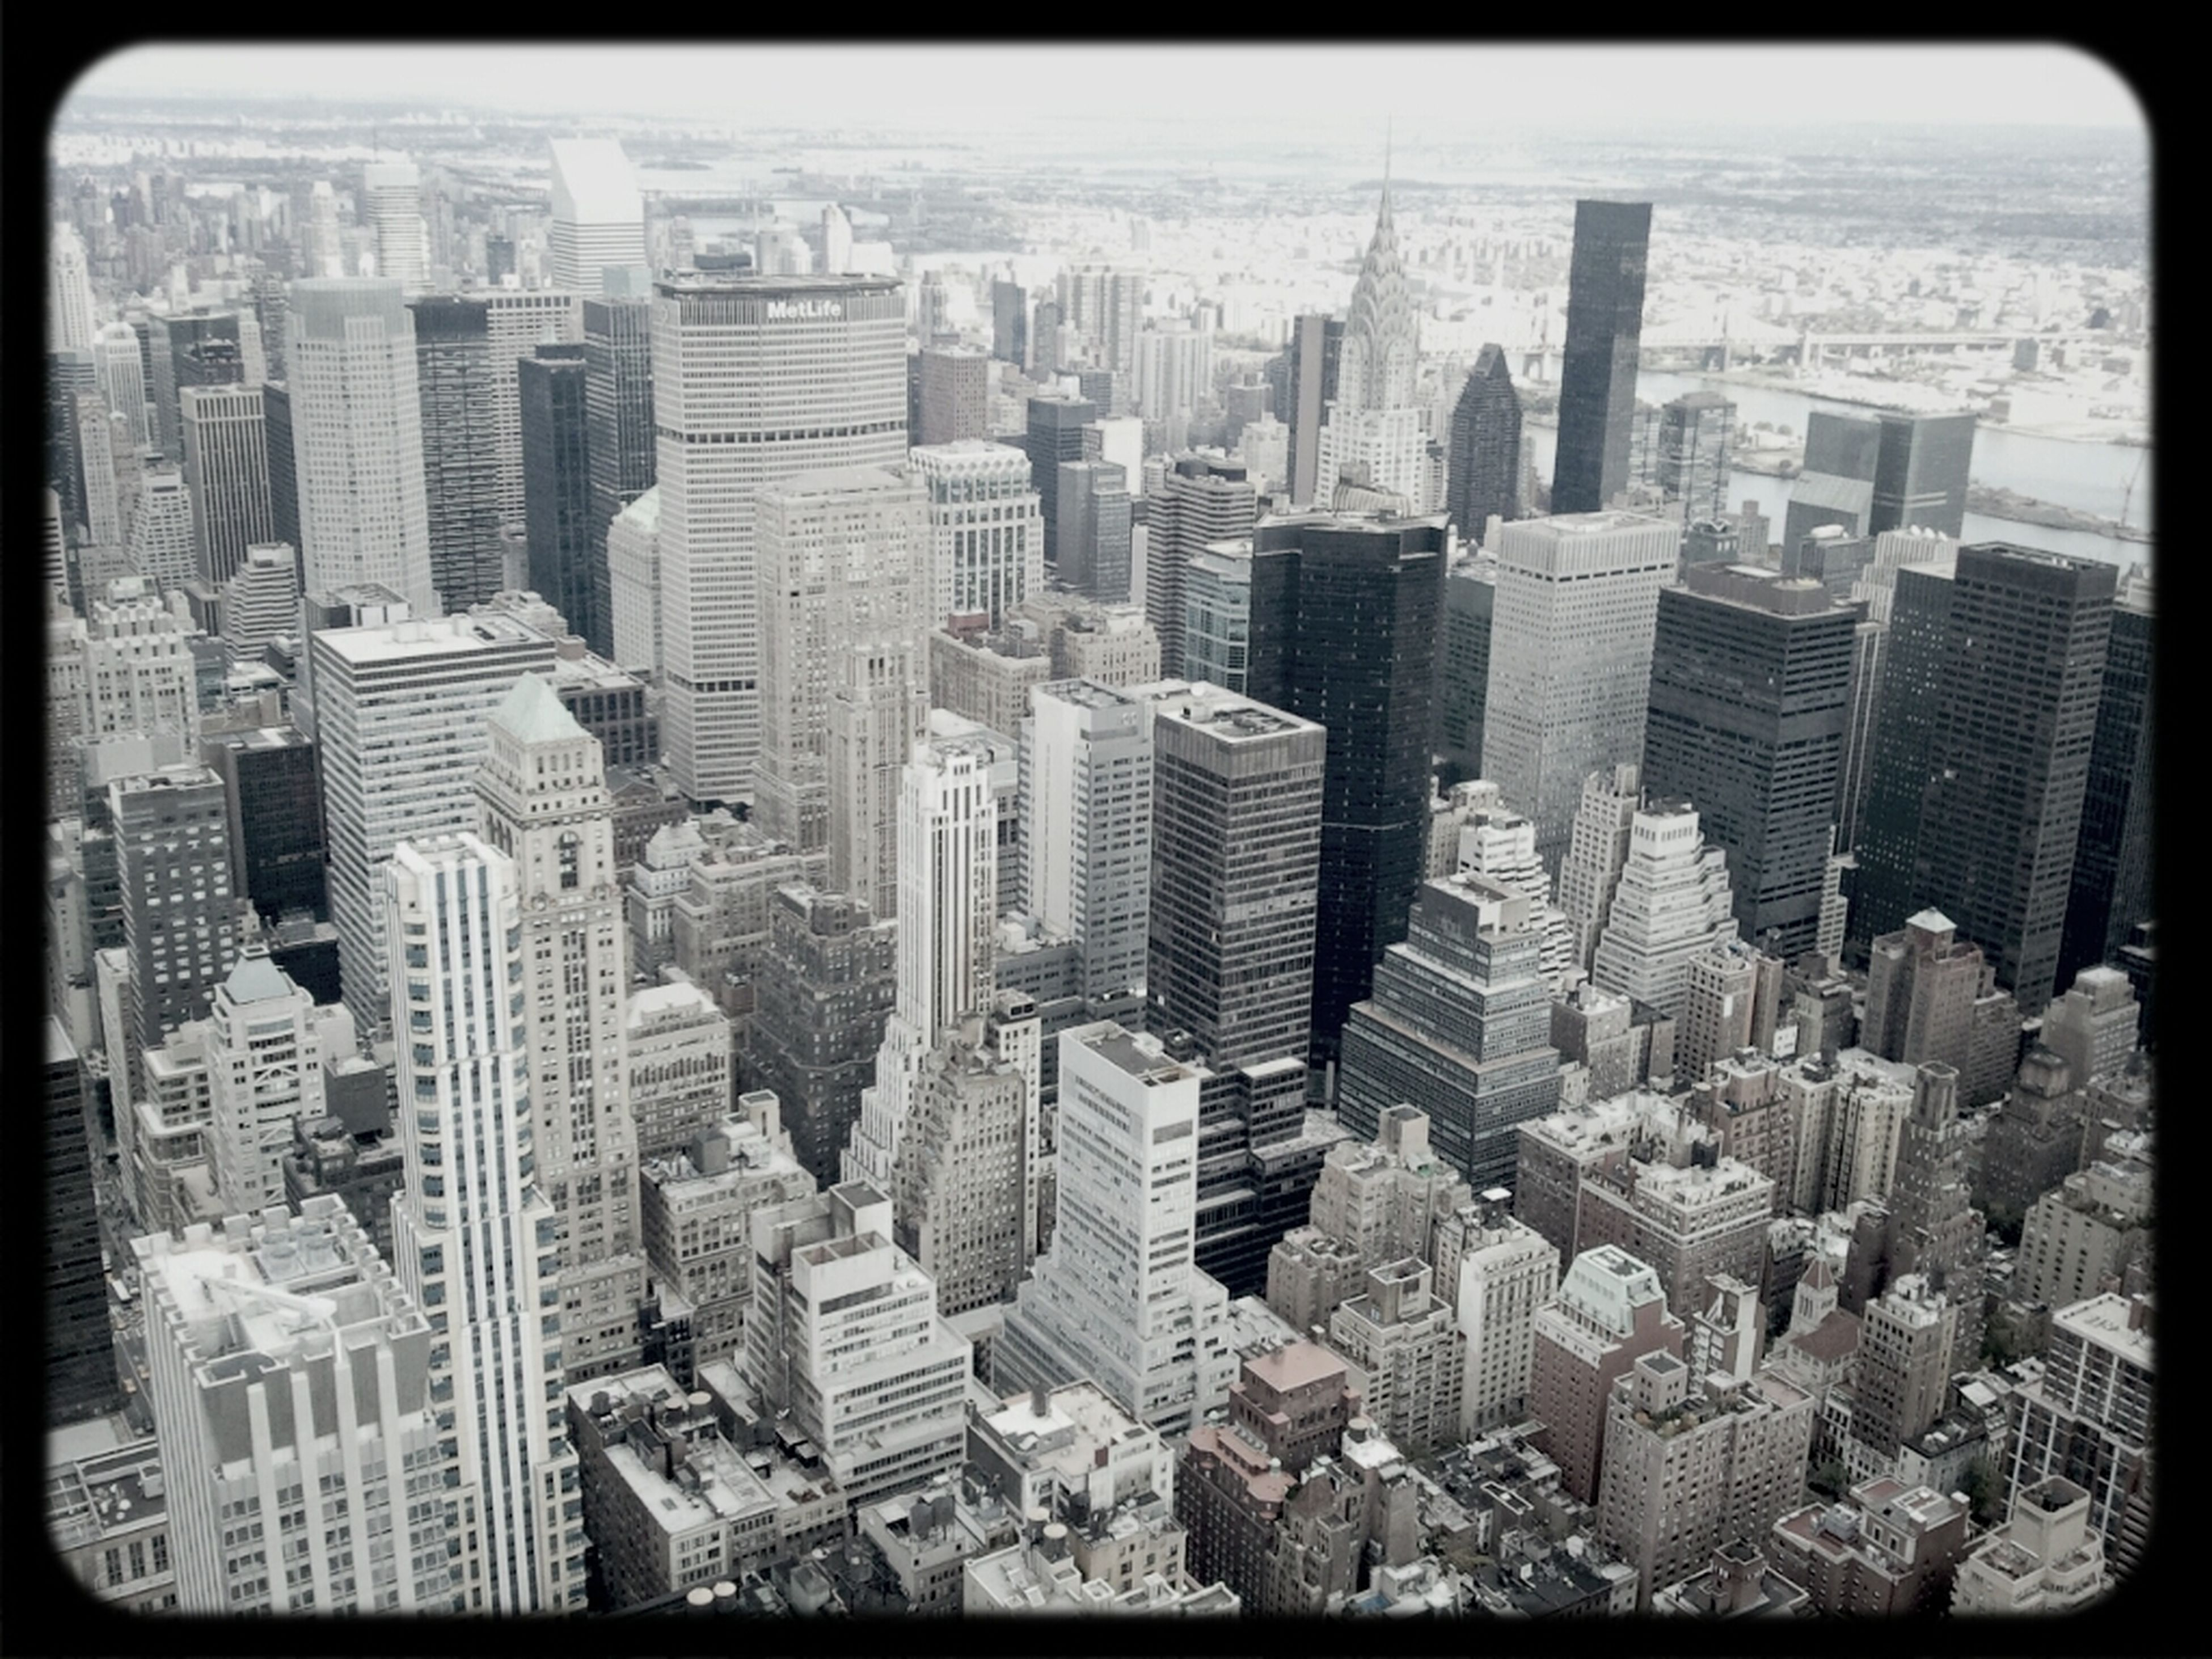 city, cityscape, skyscraper, building exterior, architecture, built structure, crowded, modern, tower, tall - high, office building, financial district, high angle view, water, aerial view, urban skyline, capital cities, transfer print, travel destinations, downtown district